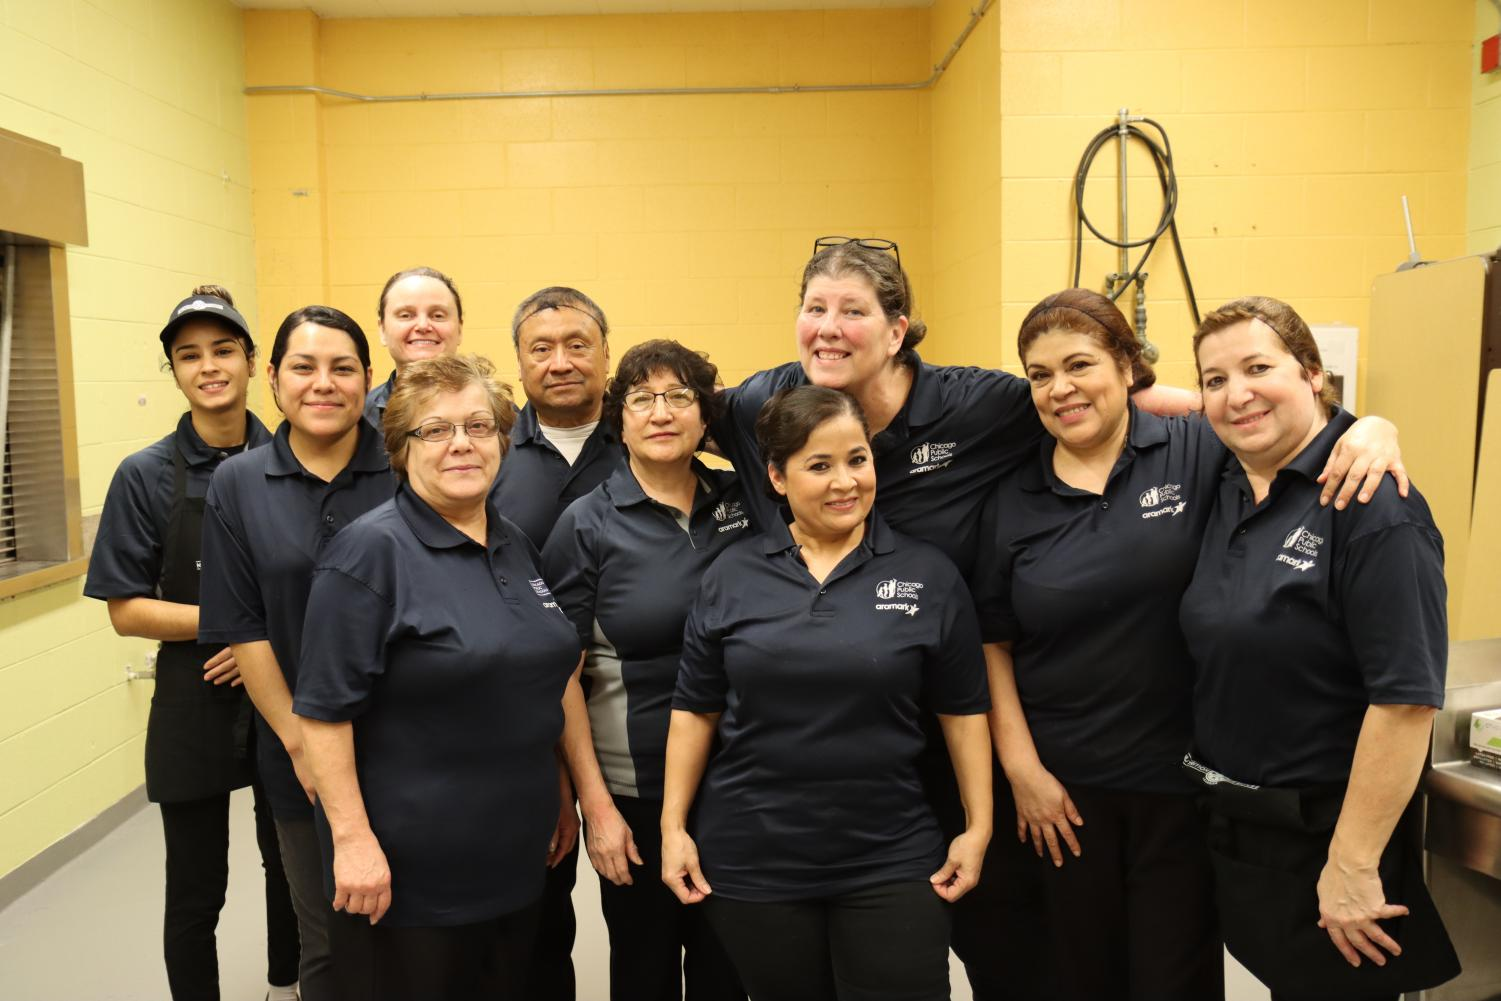 Baird and her staff work hard to serve and feed the kids of Taft. Not pictured: Jose Santana. Photo by Yasmine Soria.